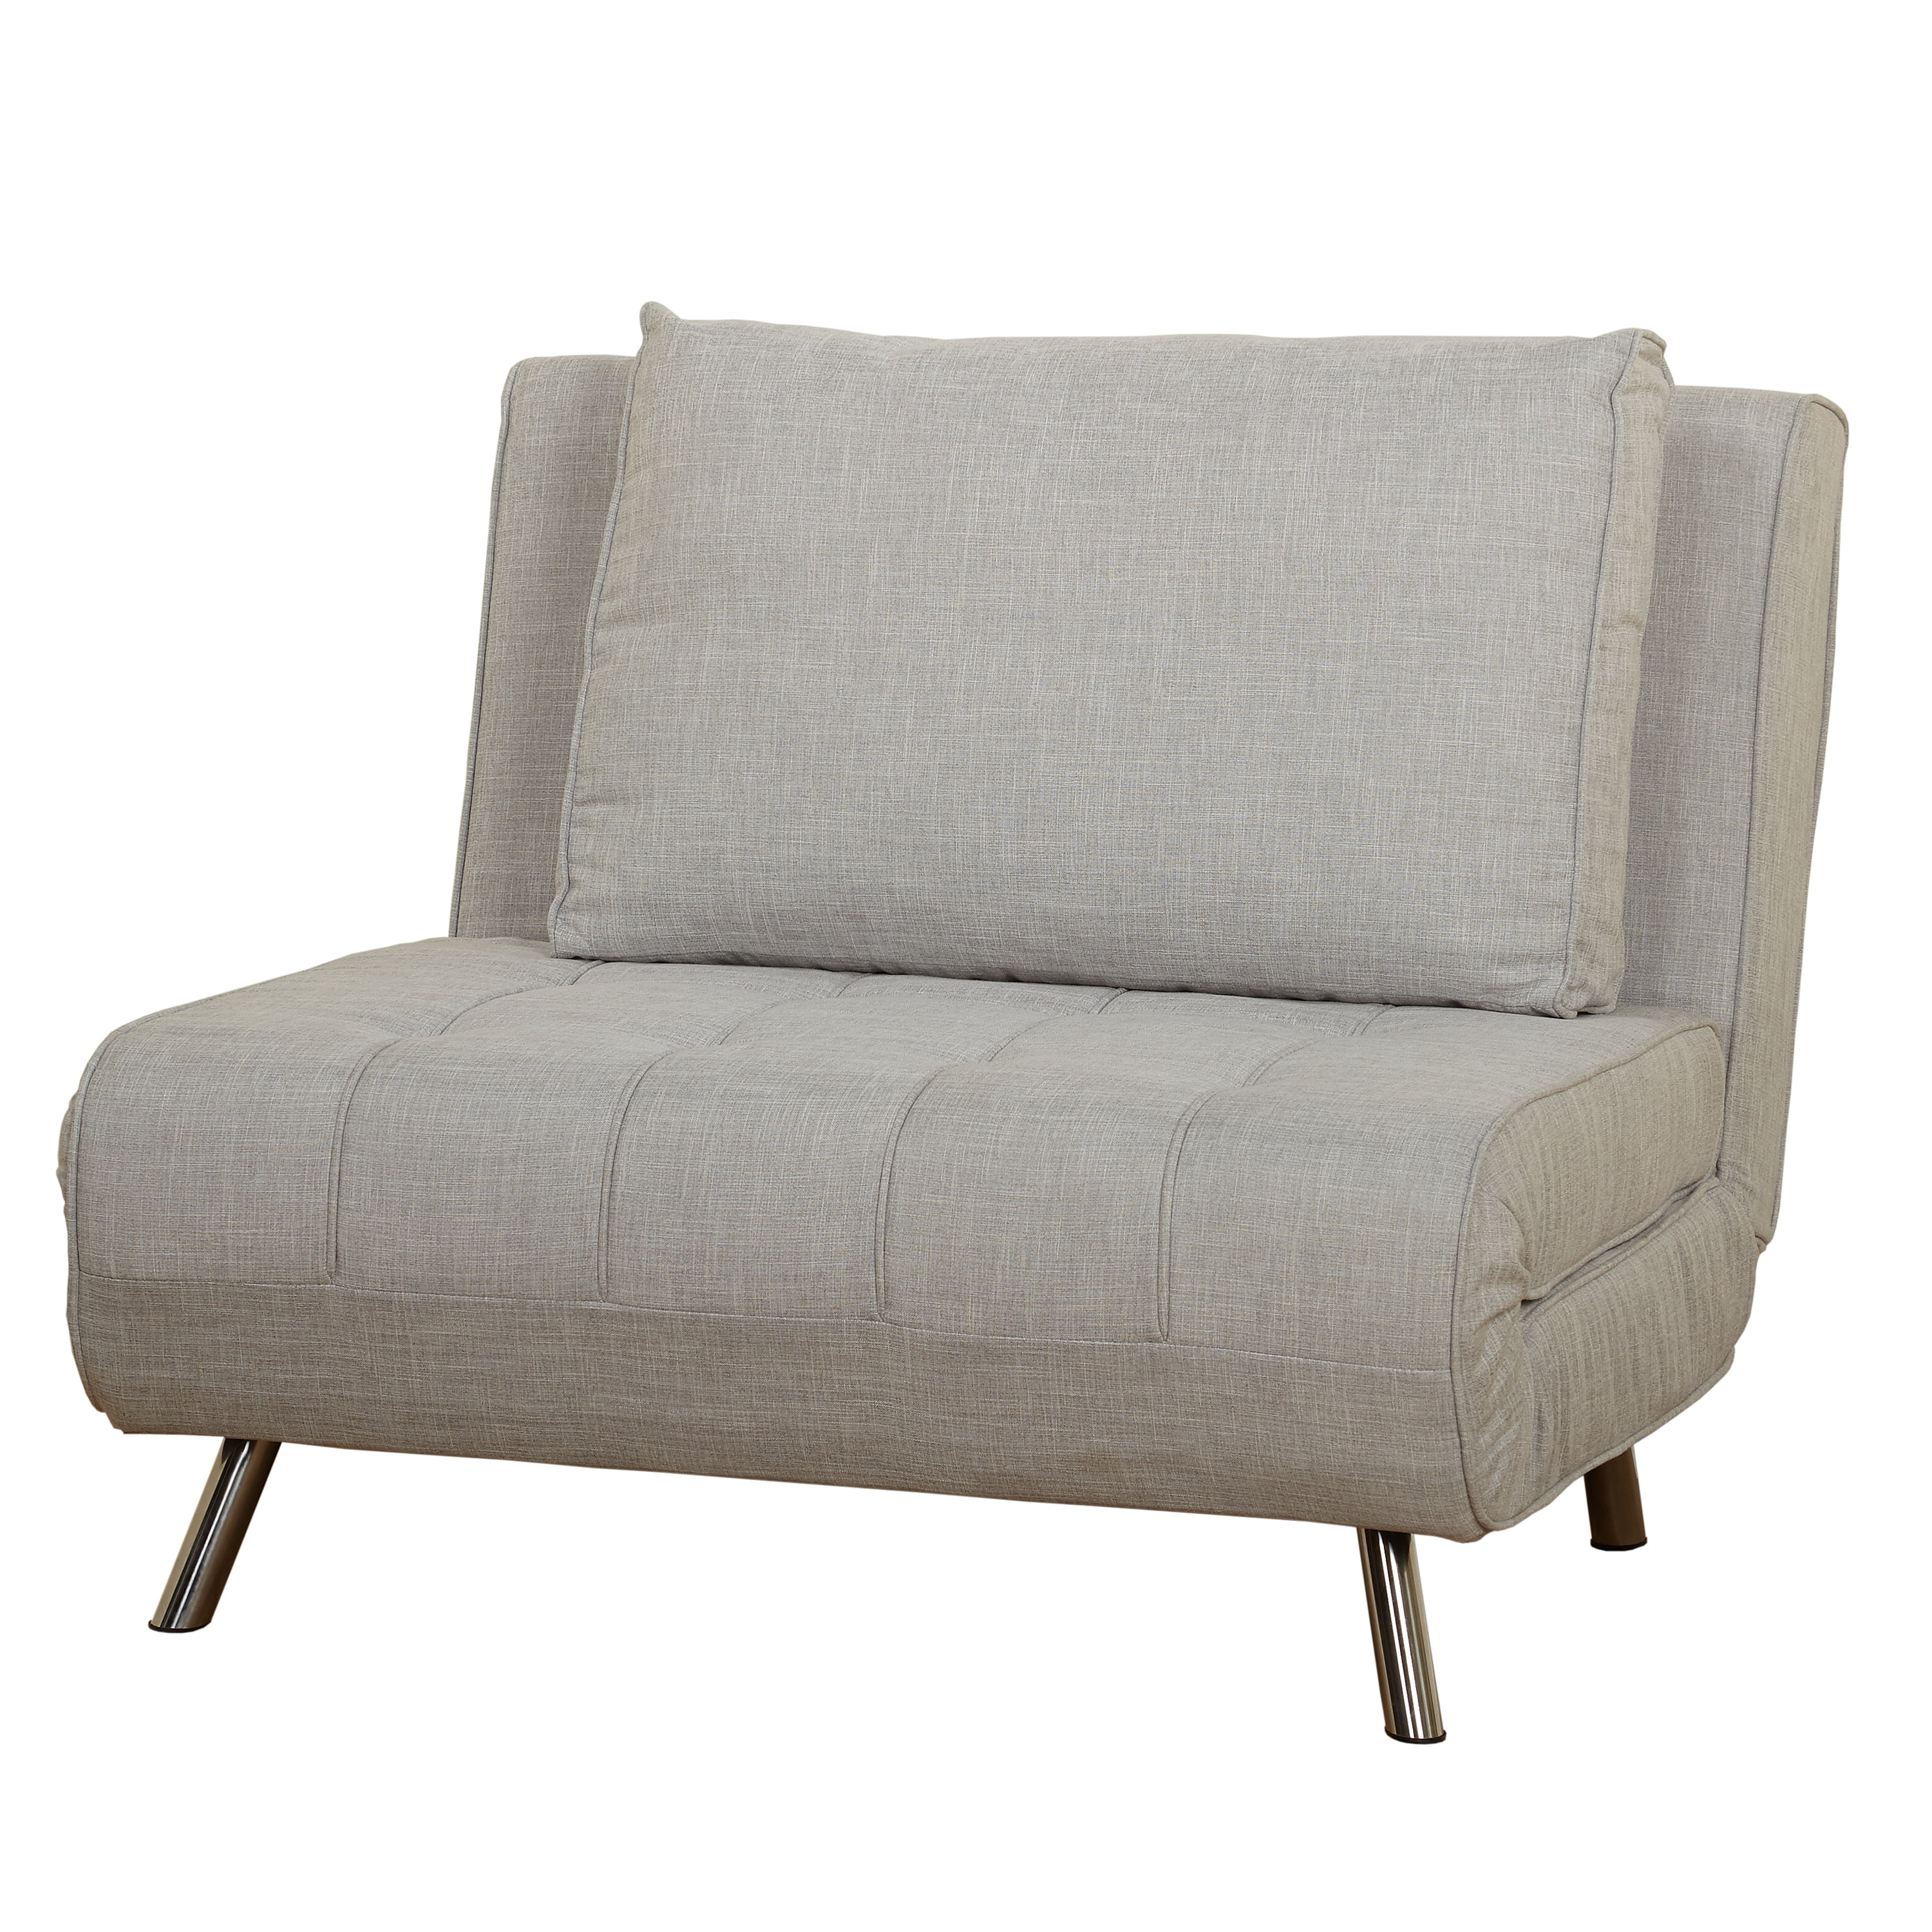 victor futon chair bed multiple colors